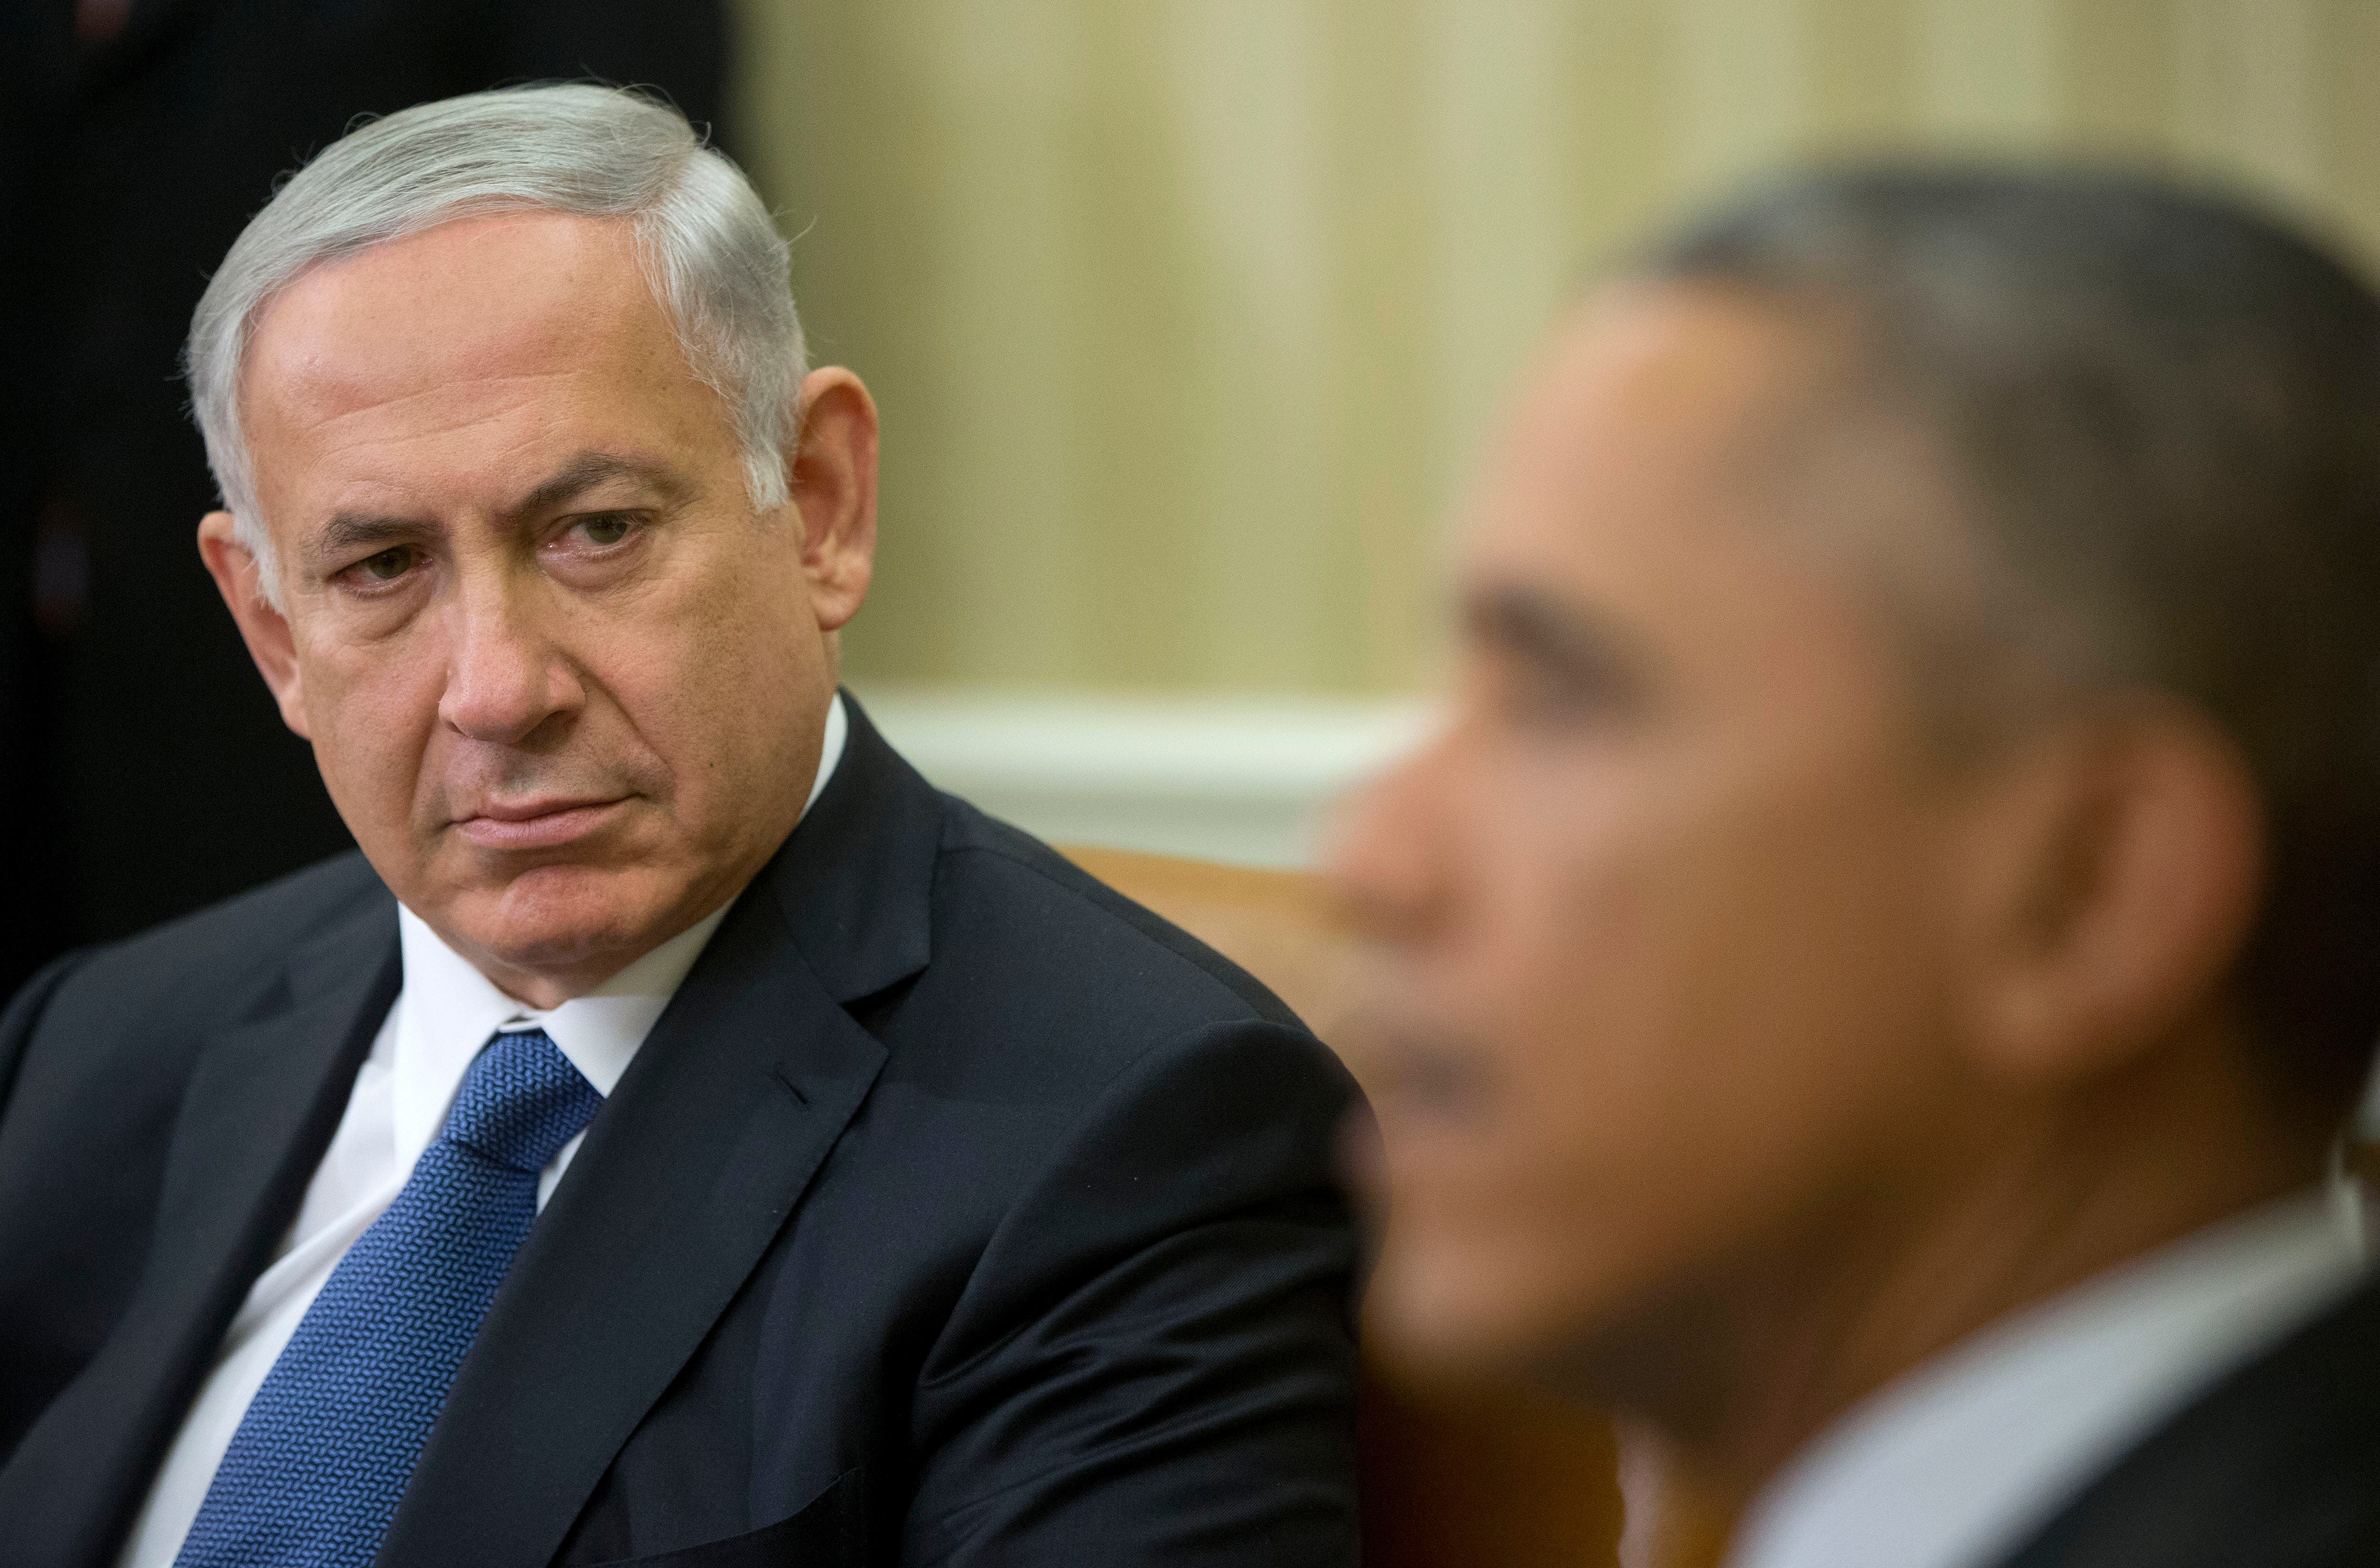 Israeli Prime Minister Benjamin Netanyahu listens as President Barack Obama speaks during their meeting in the Oval Office of the White House in Washington, 2014. (File photo: AP)